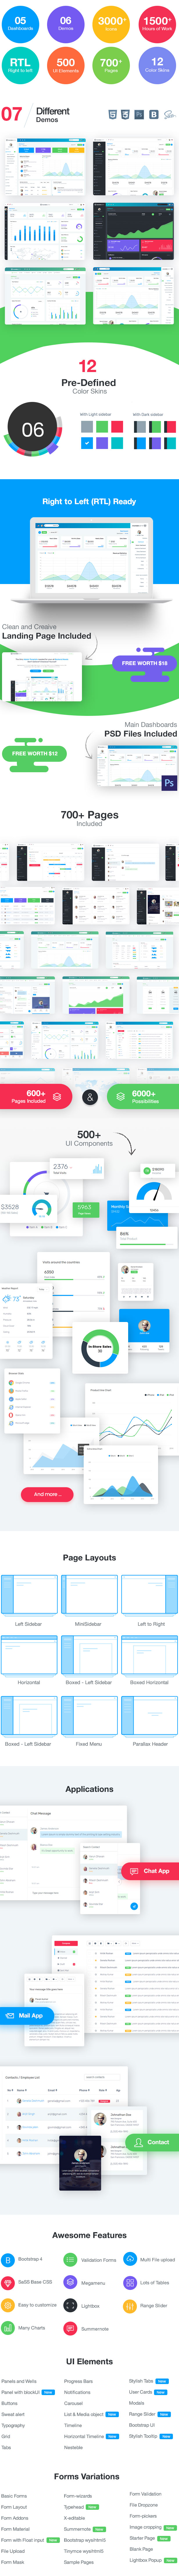 features monster tfsb - Monster - Most Complete Bootstrap 4 Admin Template